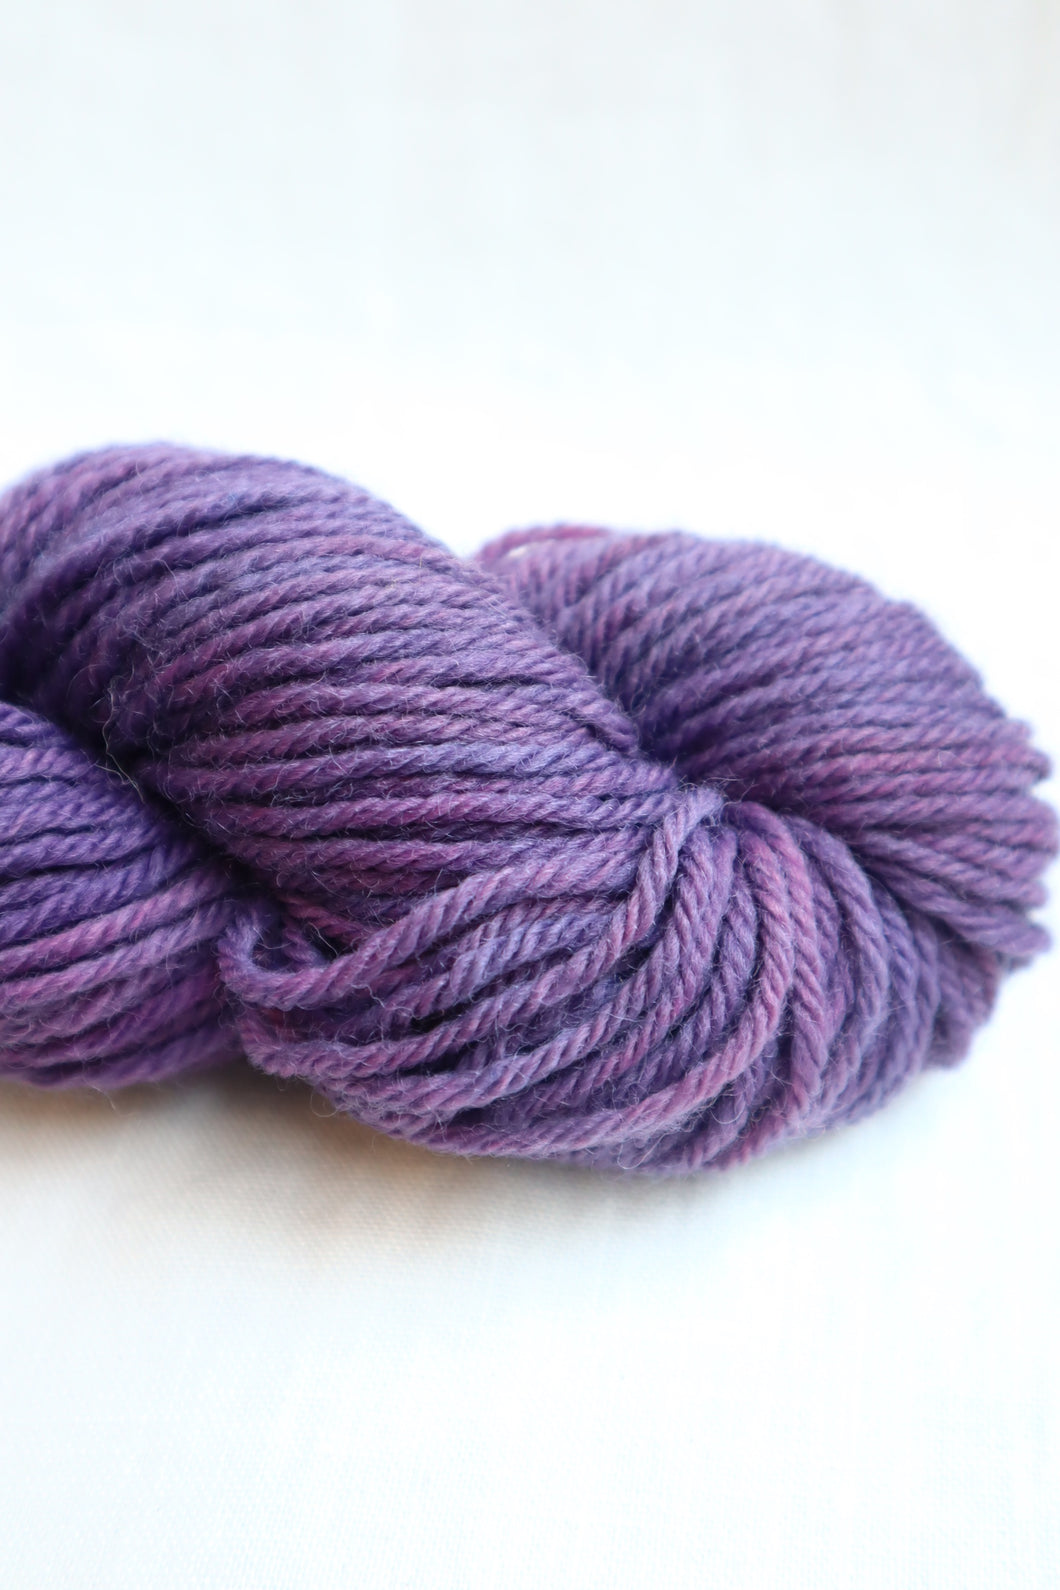 Naturally Dyed Yarn / Worsted / Indigo & Cochineal